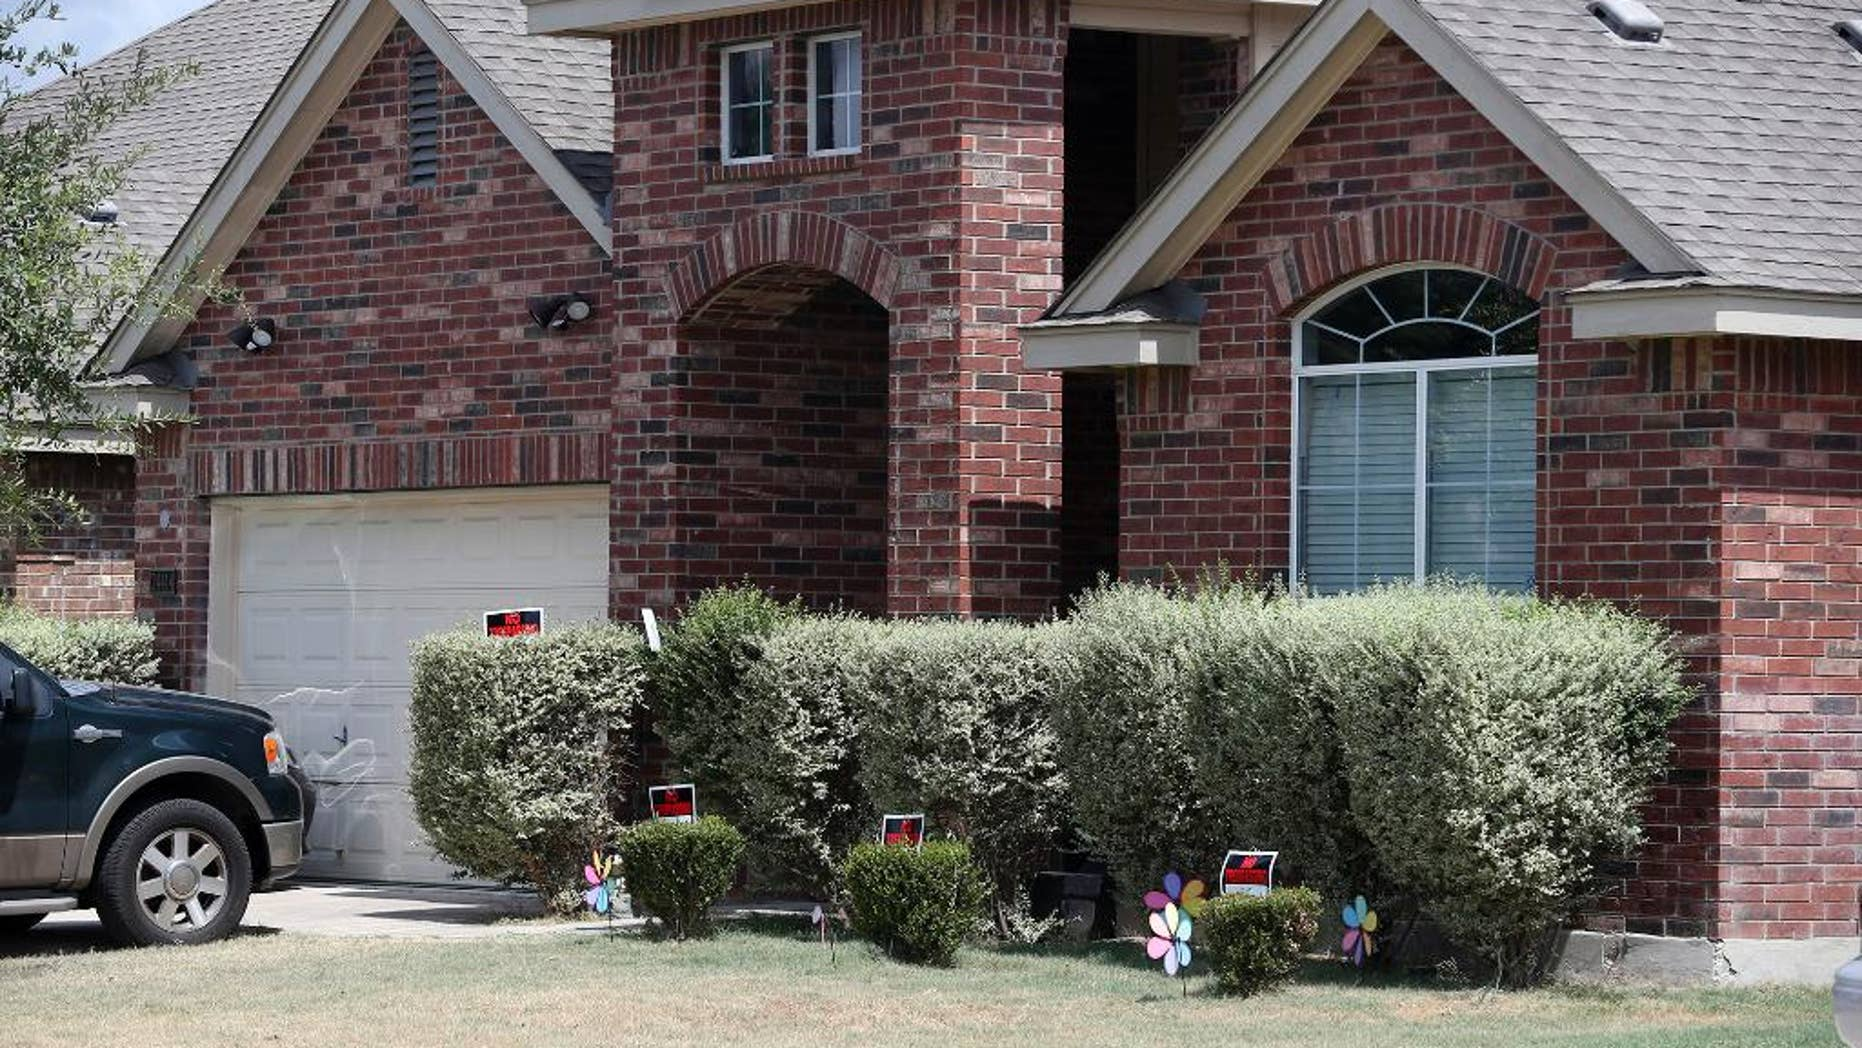 "No trespassing signs are visible at the house Tuesday, Sept. 1, 2015, where deputies fatally shot Gilbert Flores, in Northwest Bexar County, Texas, near San Antonio, last Friday. A Texas prosecutor says a second video has emerged that gives authorities a ""very clear view"" of a confrontation between deputies and Flores who had his hands raised before he was shot and killed. (John Davenport/The San Antonio Express-News via AP) RUMBO DE SAN ANTONIO OUT; NO SALES; MANDATORY CREDIT"